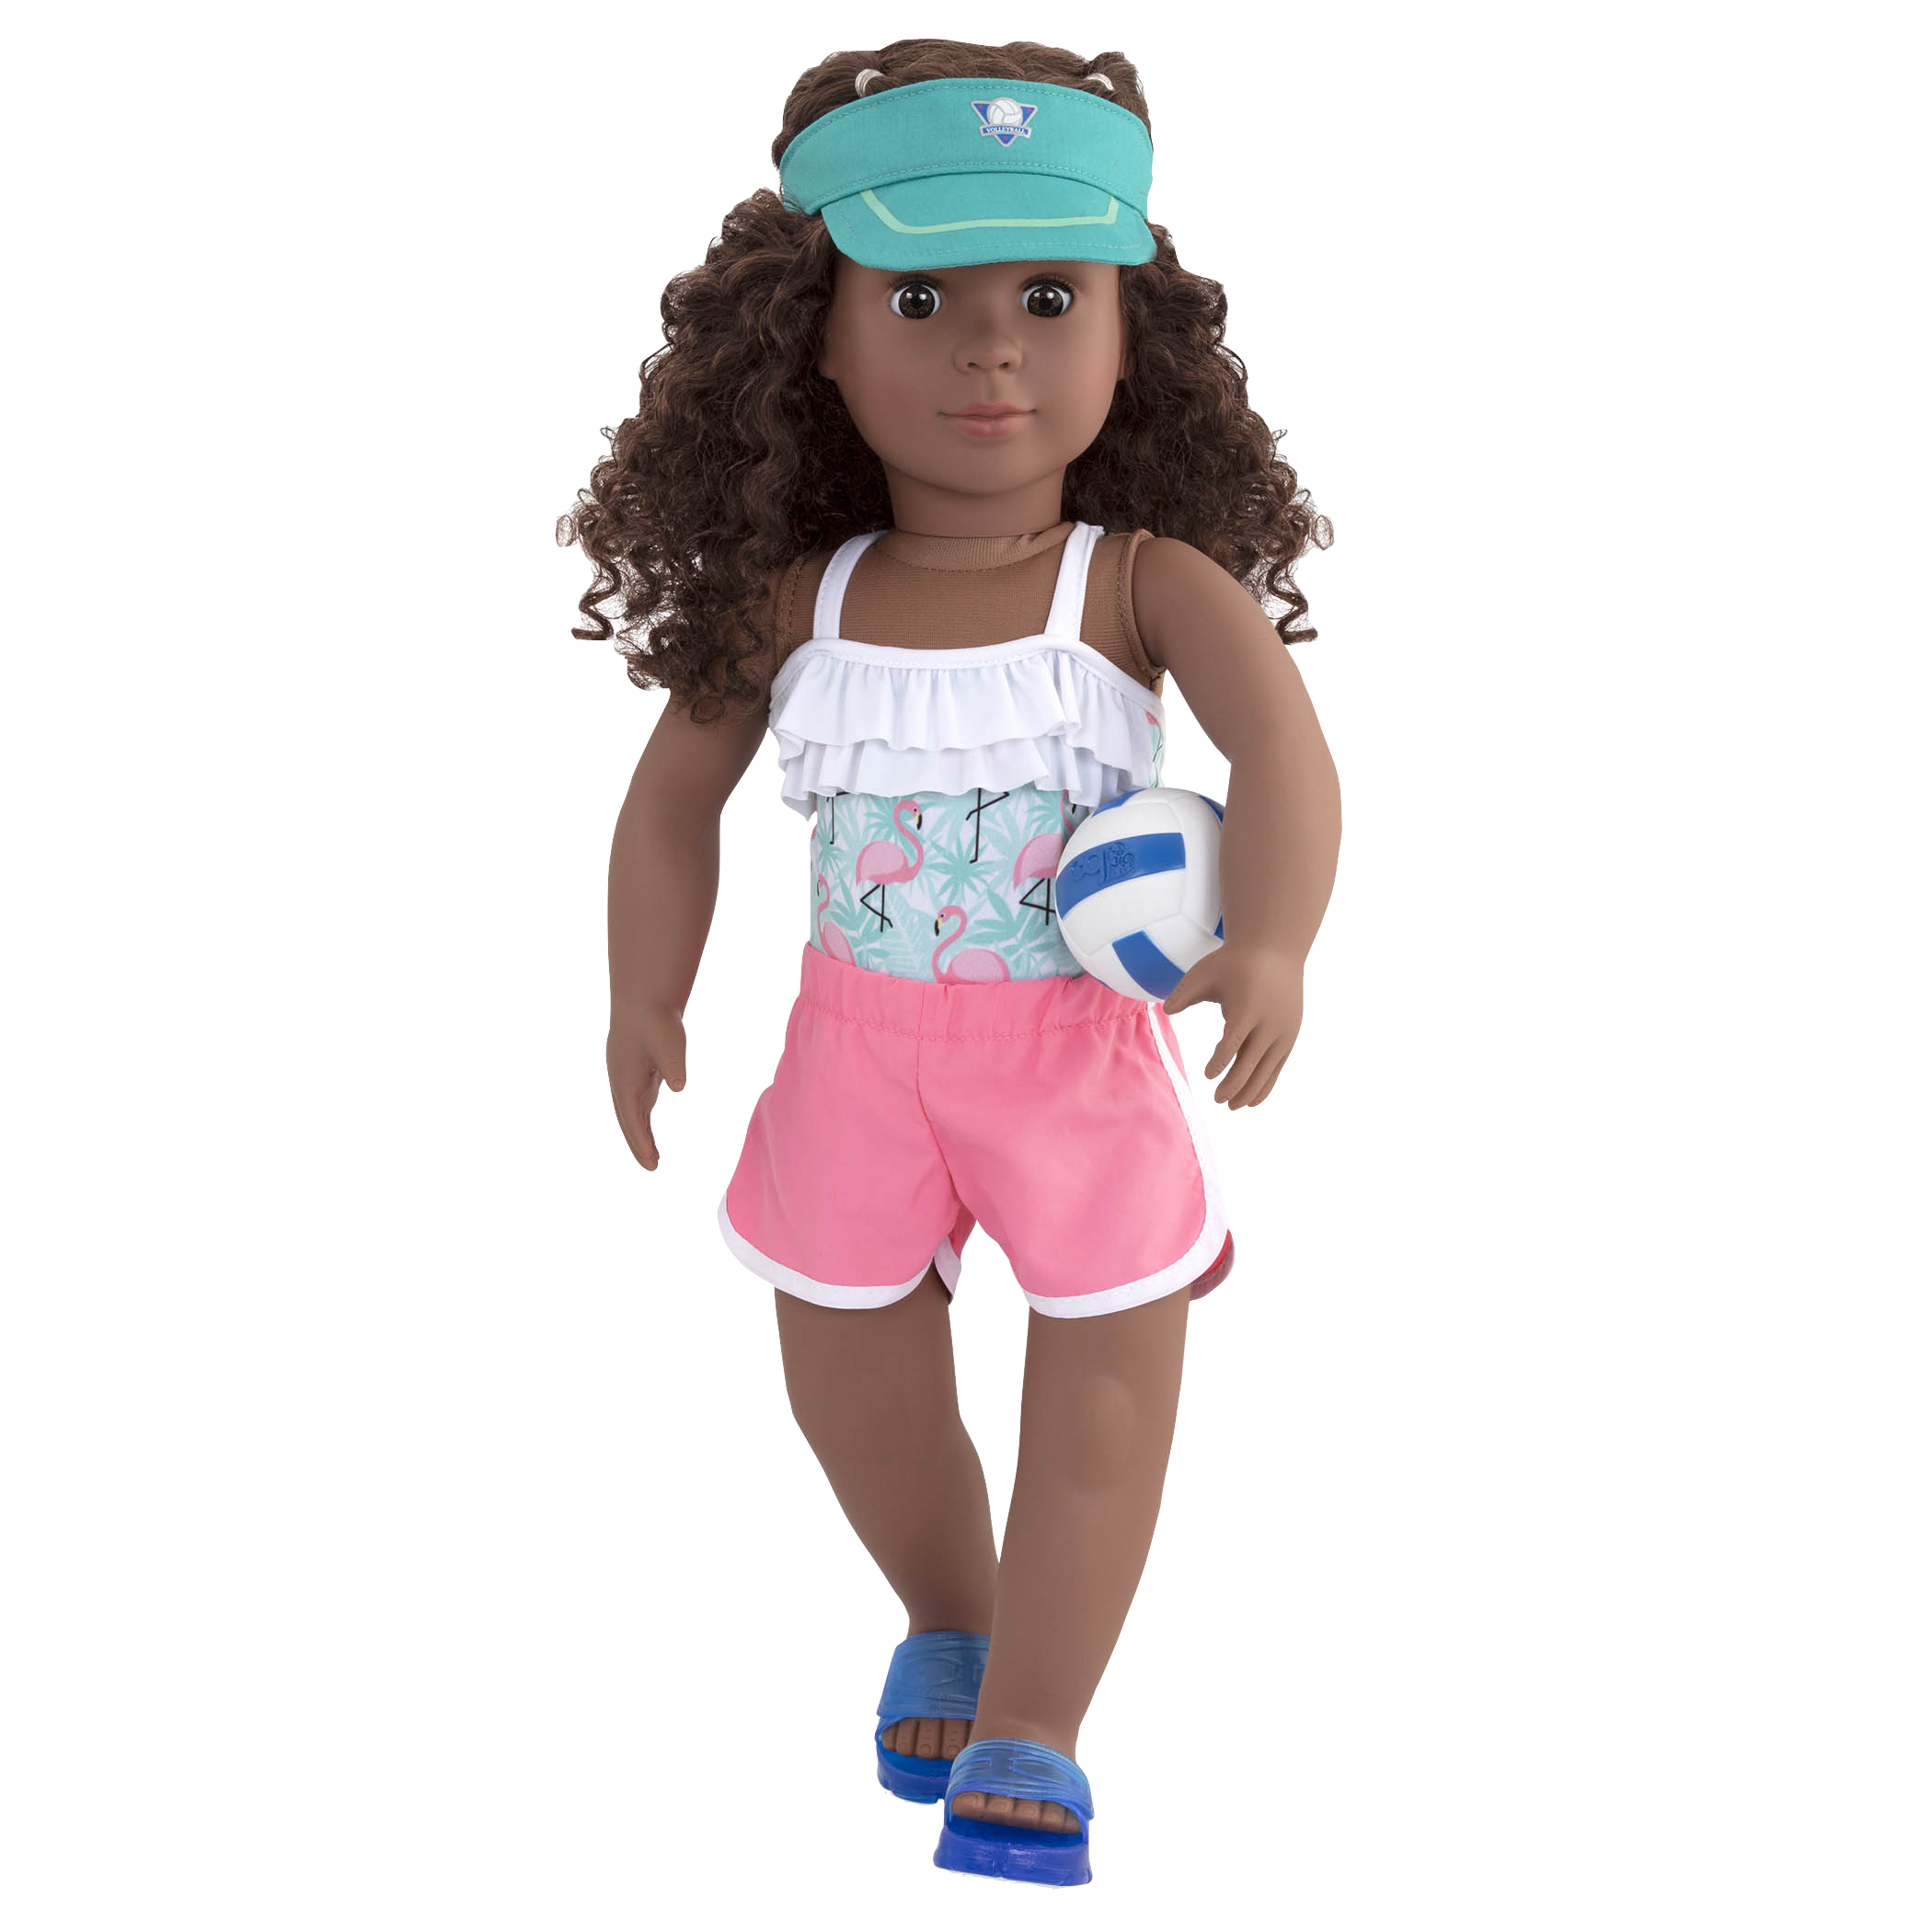 Ace Attire volleyball outfit Dedra holding ball